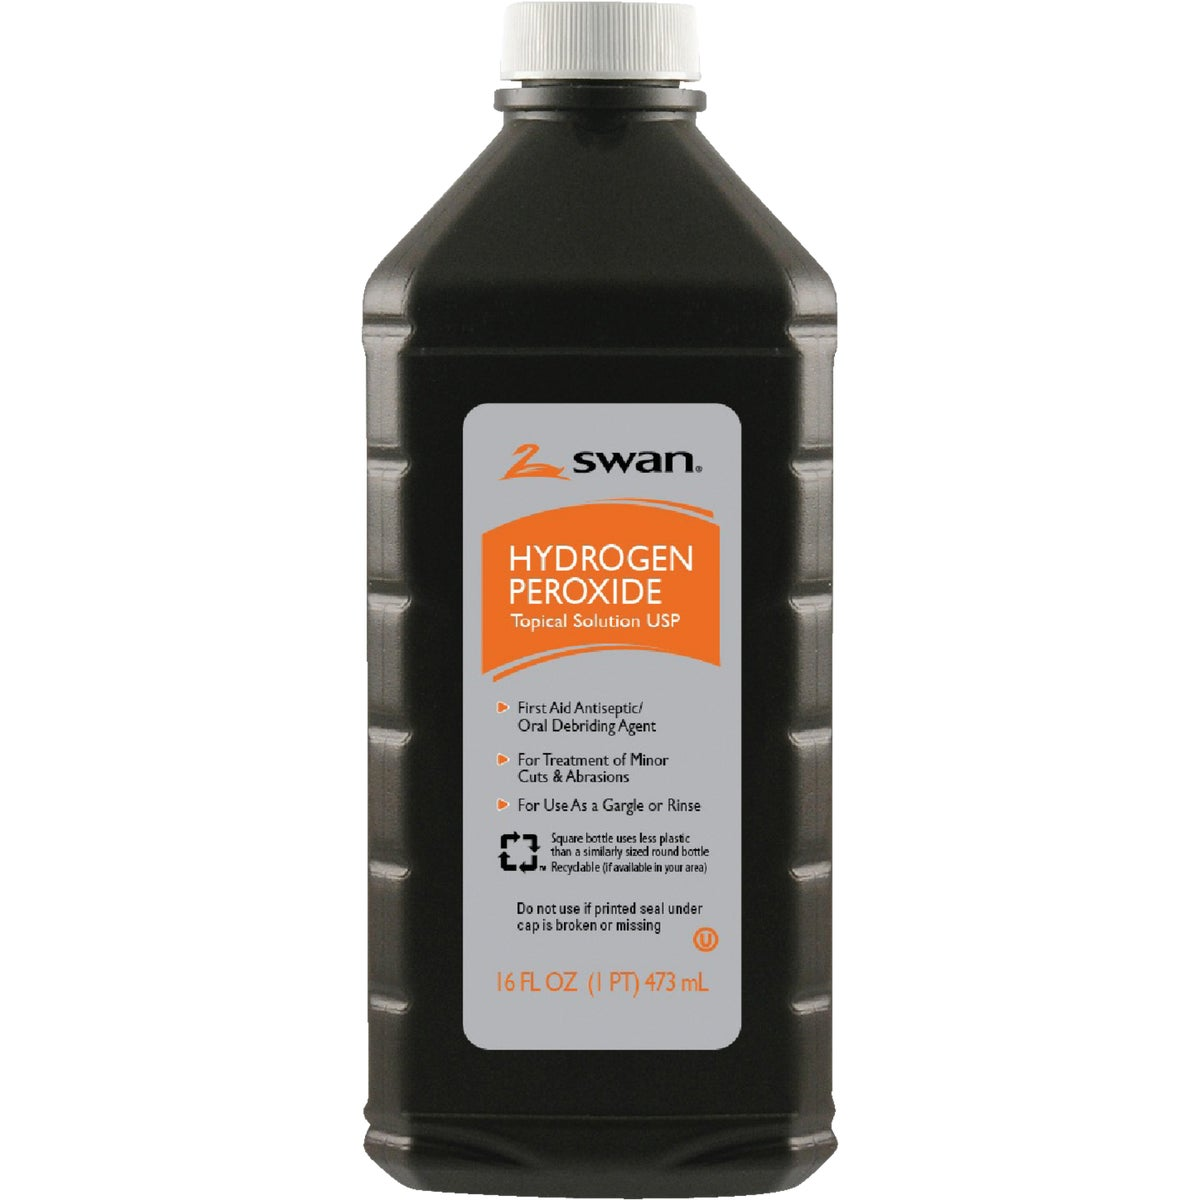 8OZ SWAN PEROXIDE - S1137 by Vi-jon, Inc.